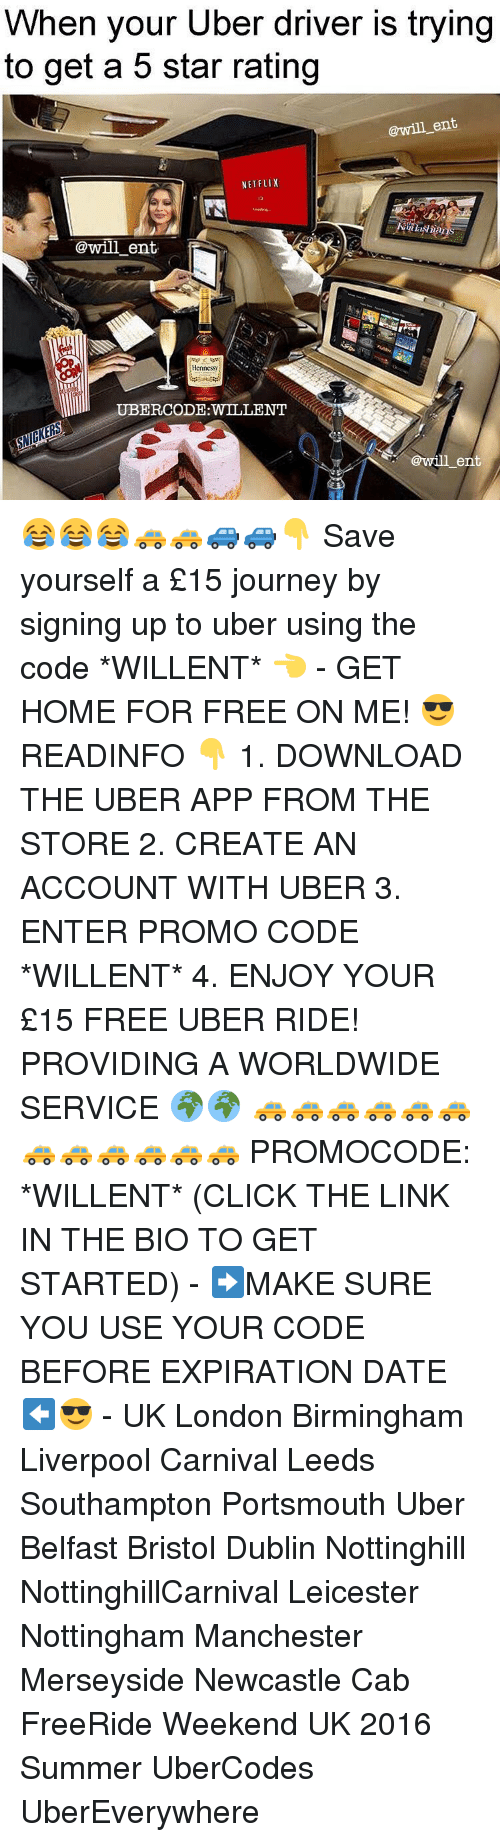 Hennessy, Journey, and Memes: When your Uber driver is trying  to get a 5 star rating  @will ent  NETFLIX  @will ent.  Hennessy  @will ent 😂😂😂🚕🚕🚙🚙👇 Save yourself a £15 journey by signing up to uber using the code *WILLENT* 👈 - GET HOME FOR FREE ON ME! 😎 READINFO 👇 1. DOWNLOAD THE UBER APP FROM THE STORE 2. CREATE AN ACCOUNT WITH UBER 3. ENTER PROMO CODE *WILLENT* 4. ENJOY YOUR £15 FREE UBER RIDE! PROVIDING A WORLDWIDE SERVICE 🌍🌍 🚕🚕🚕🚕🚕🚕🚕🚕🚕🚕🚕🚕 PROMOCODE: *WILLENT* (CLICK THE LINK IN THE BIO TO GET STARTED) - ➡️MAKE SURE YOU USE YOUR CODE BEFORE EXPIRATION DATE ⬅️😎 - UK London Birmingham Liverpool Carnival Leeds Southampton Portsmouth Uber Belfast Bristol Dublin Nottinghill NottinghillCarnival Leicester Nottingham Manchester Merseyside Newcastle Cab FreeRide Weekend UK 2016 Summer UberCodes UberEverywhere